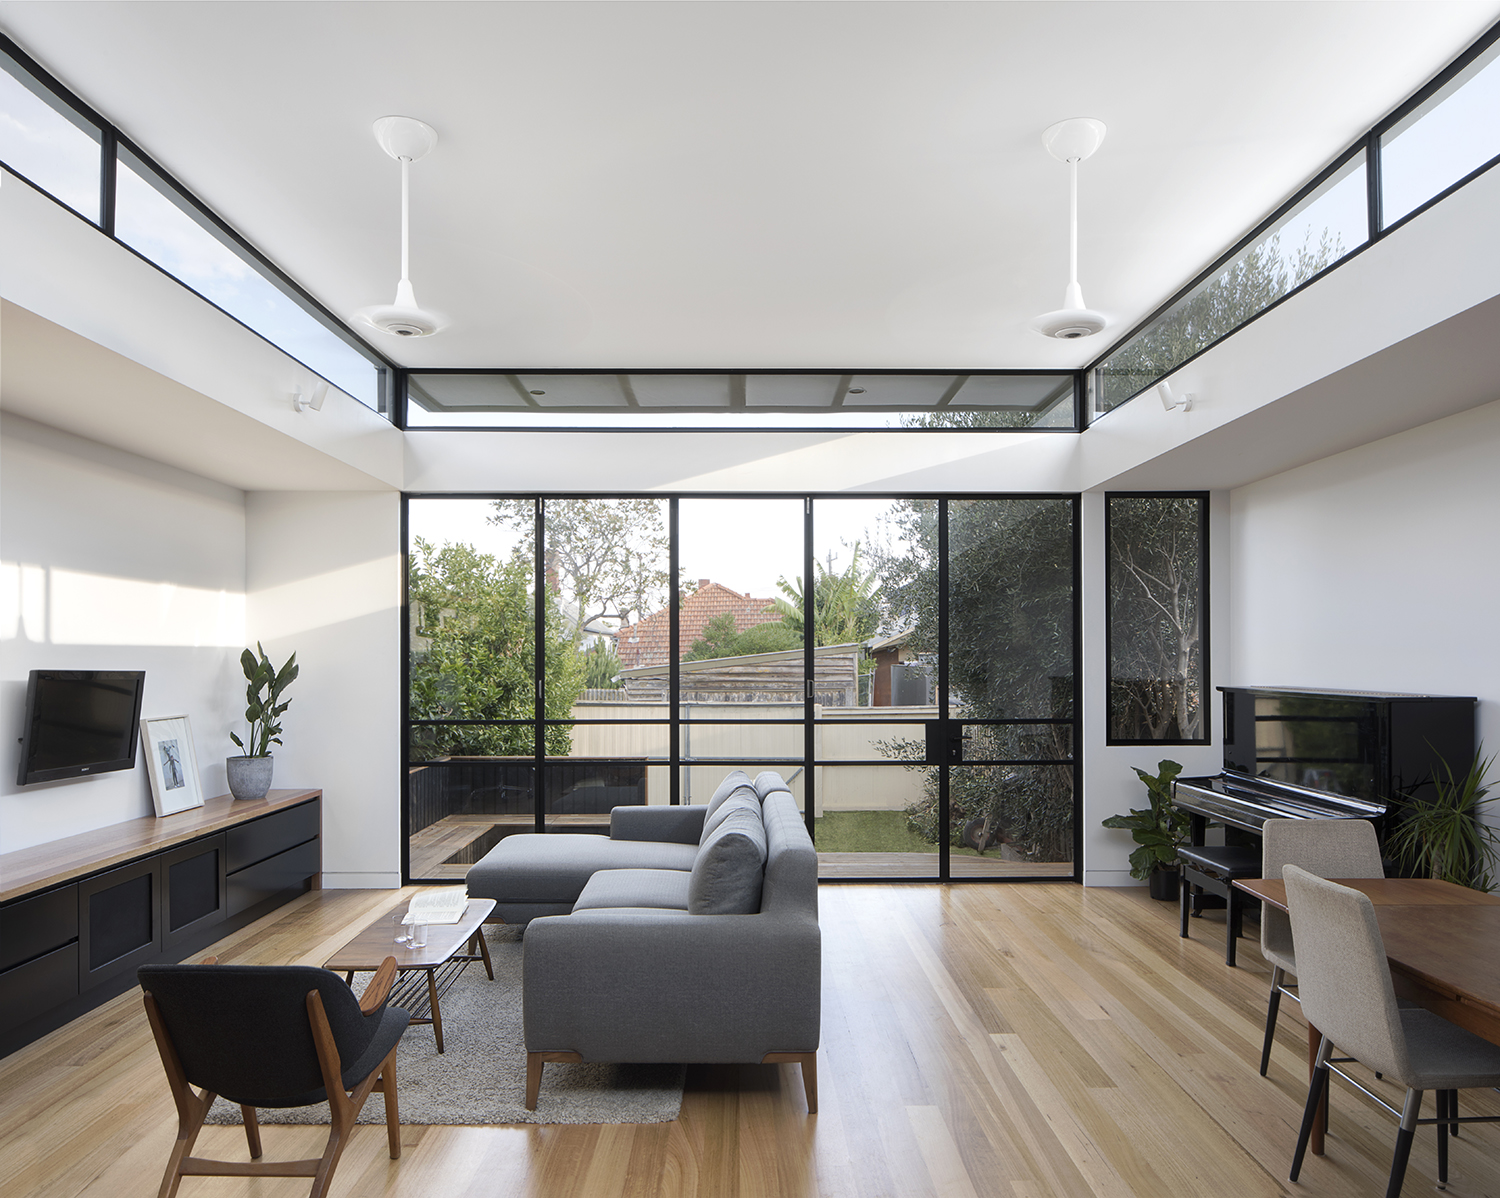 Home renovation adds a curving roof to let in light